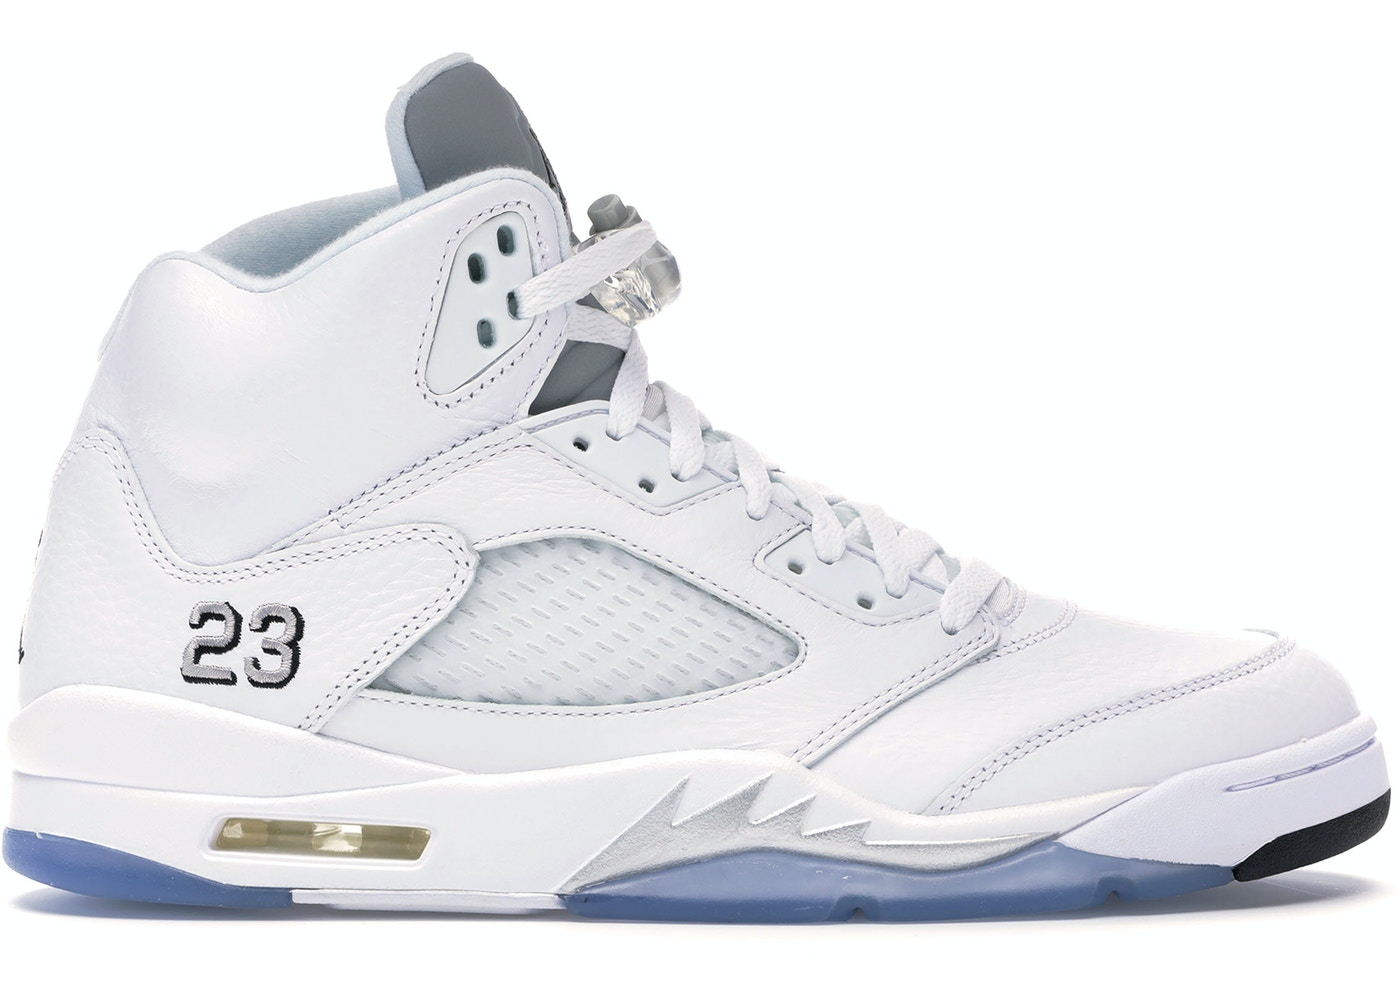 sports shoes 2b5e0 ee8a7 Jordan 5 Retro Metallic White (2015)